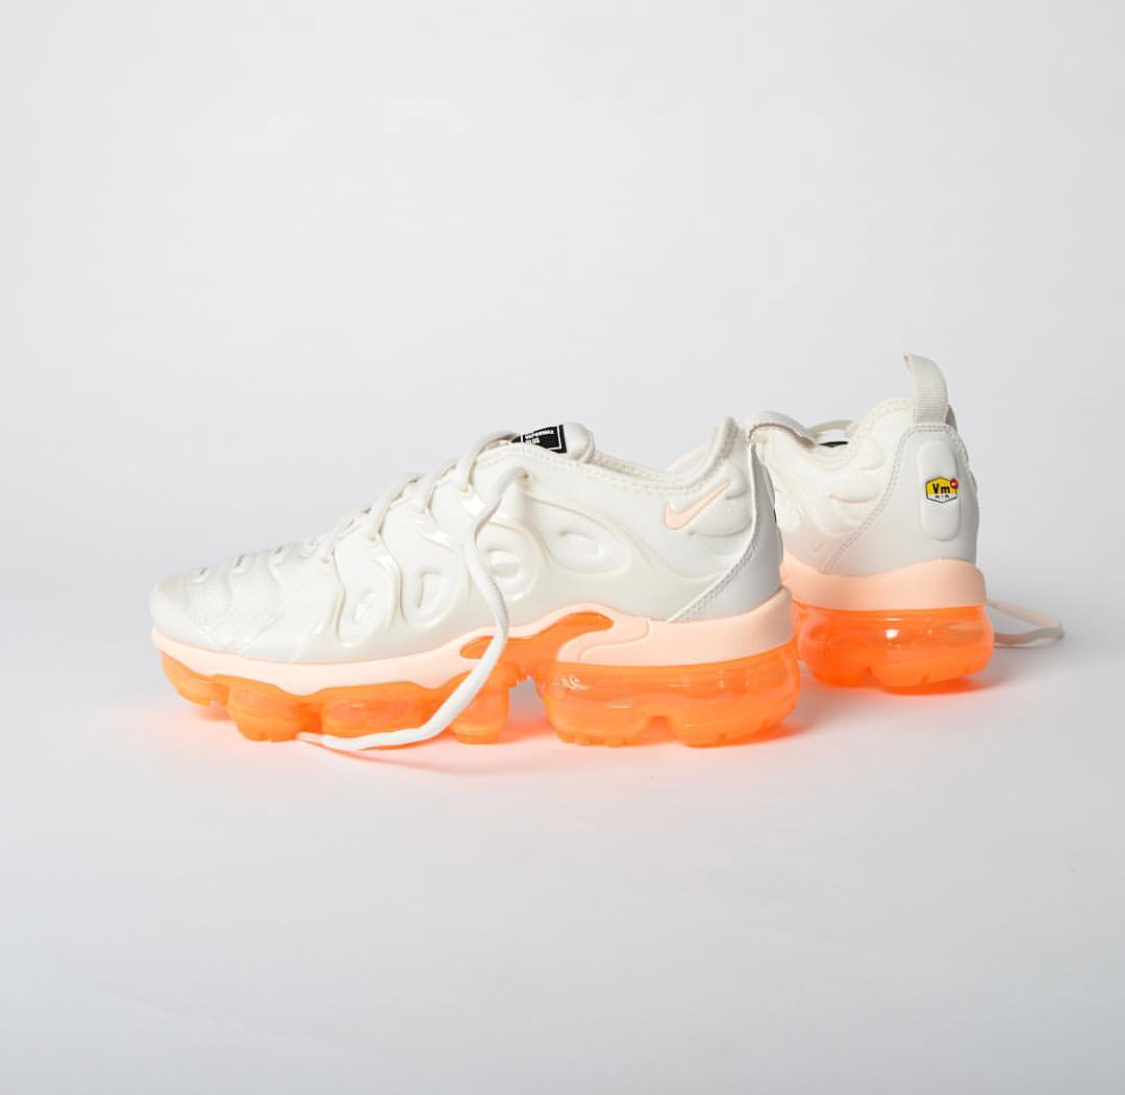 8516f1d38f3 Be Quick and Catch This Nike Air Vapormax Plus Early — CNK DailyChicksNKicks